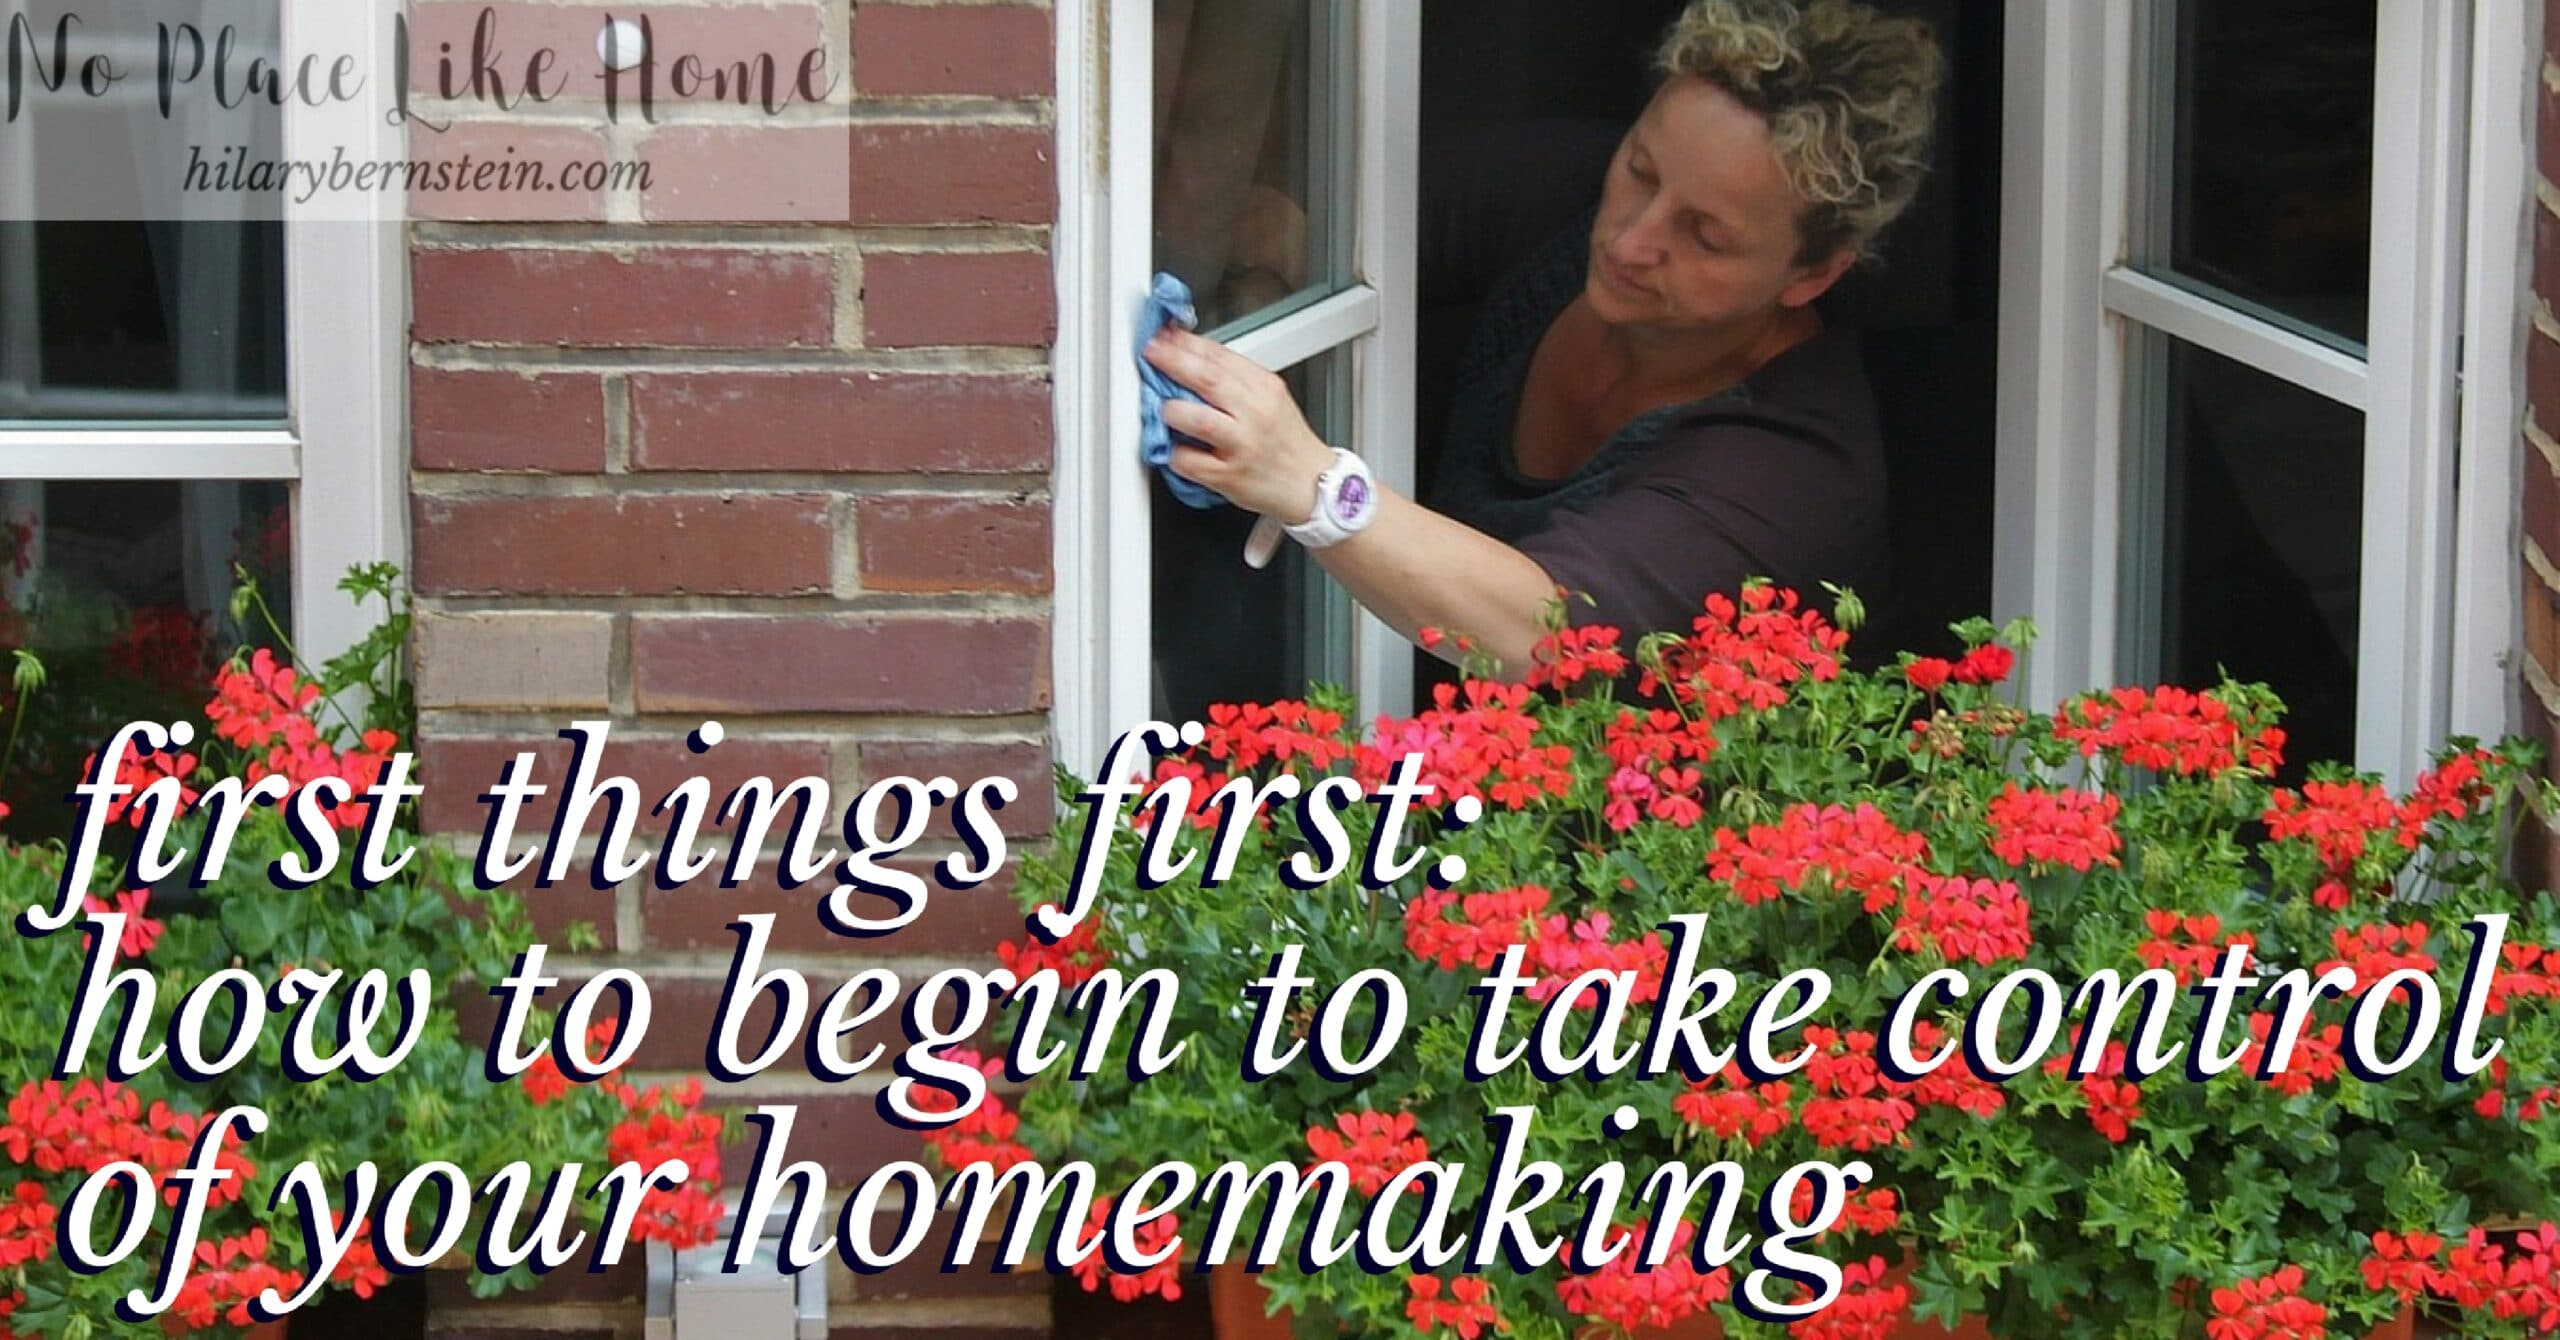 Want to learn how to begin to take control of your homemaking? Here's a simple but important way to get started!